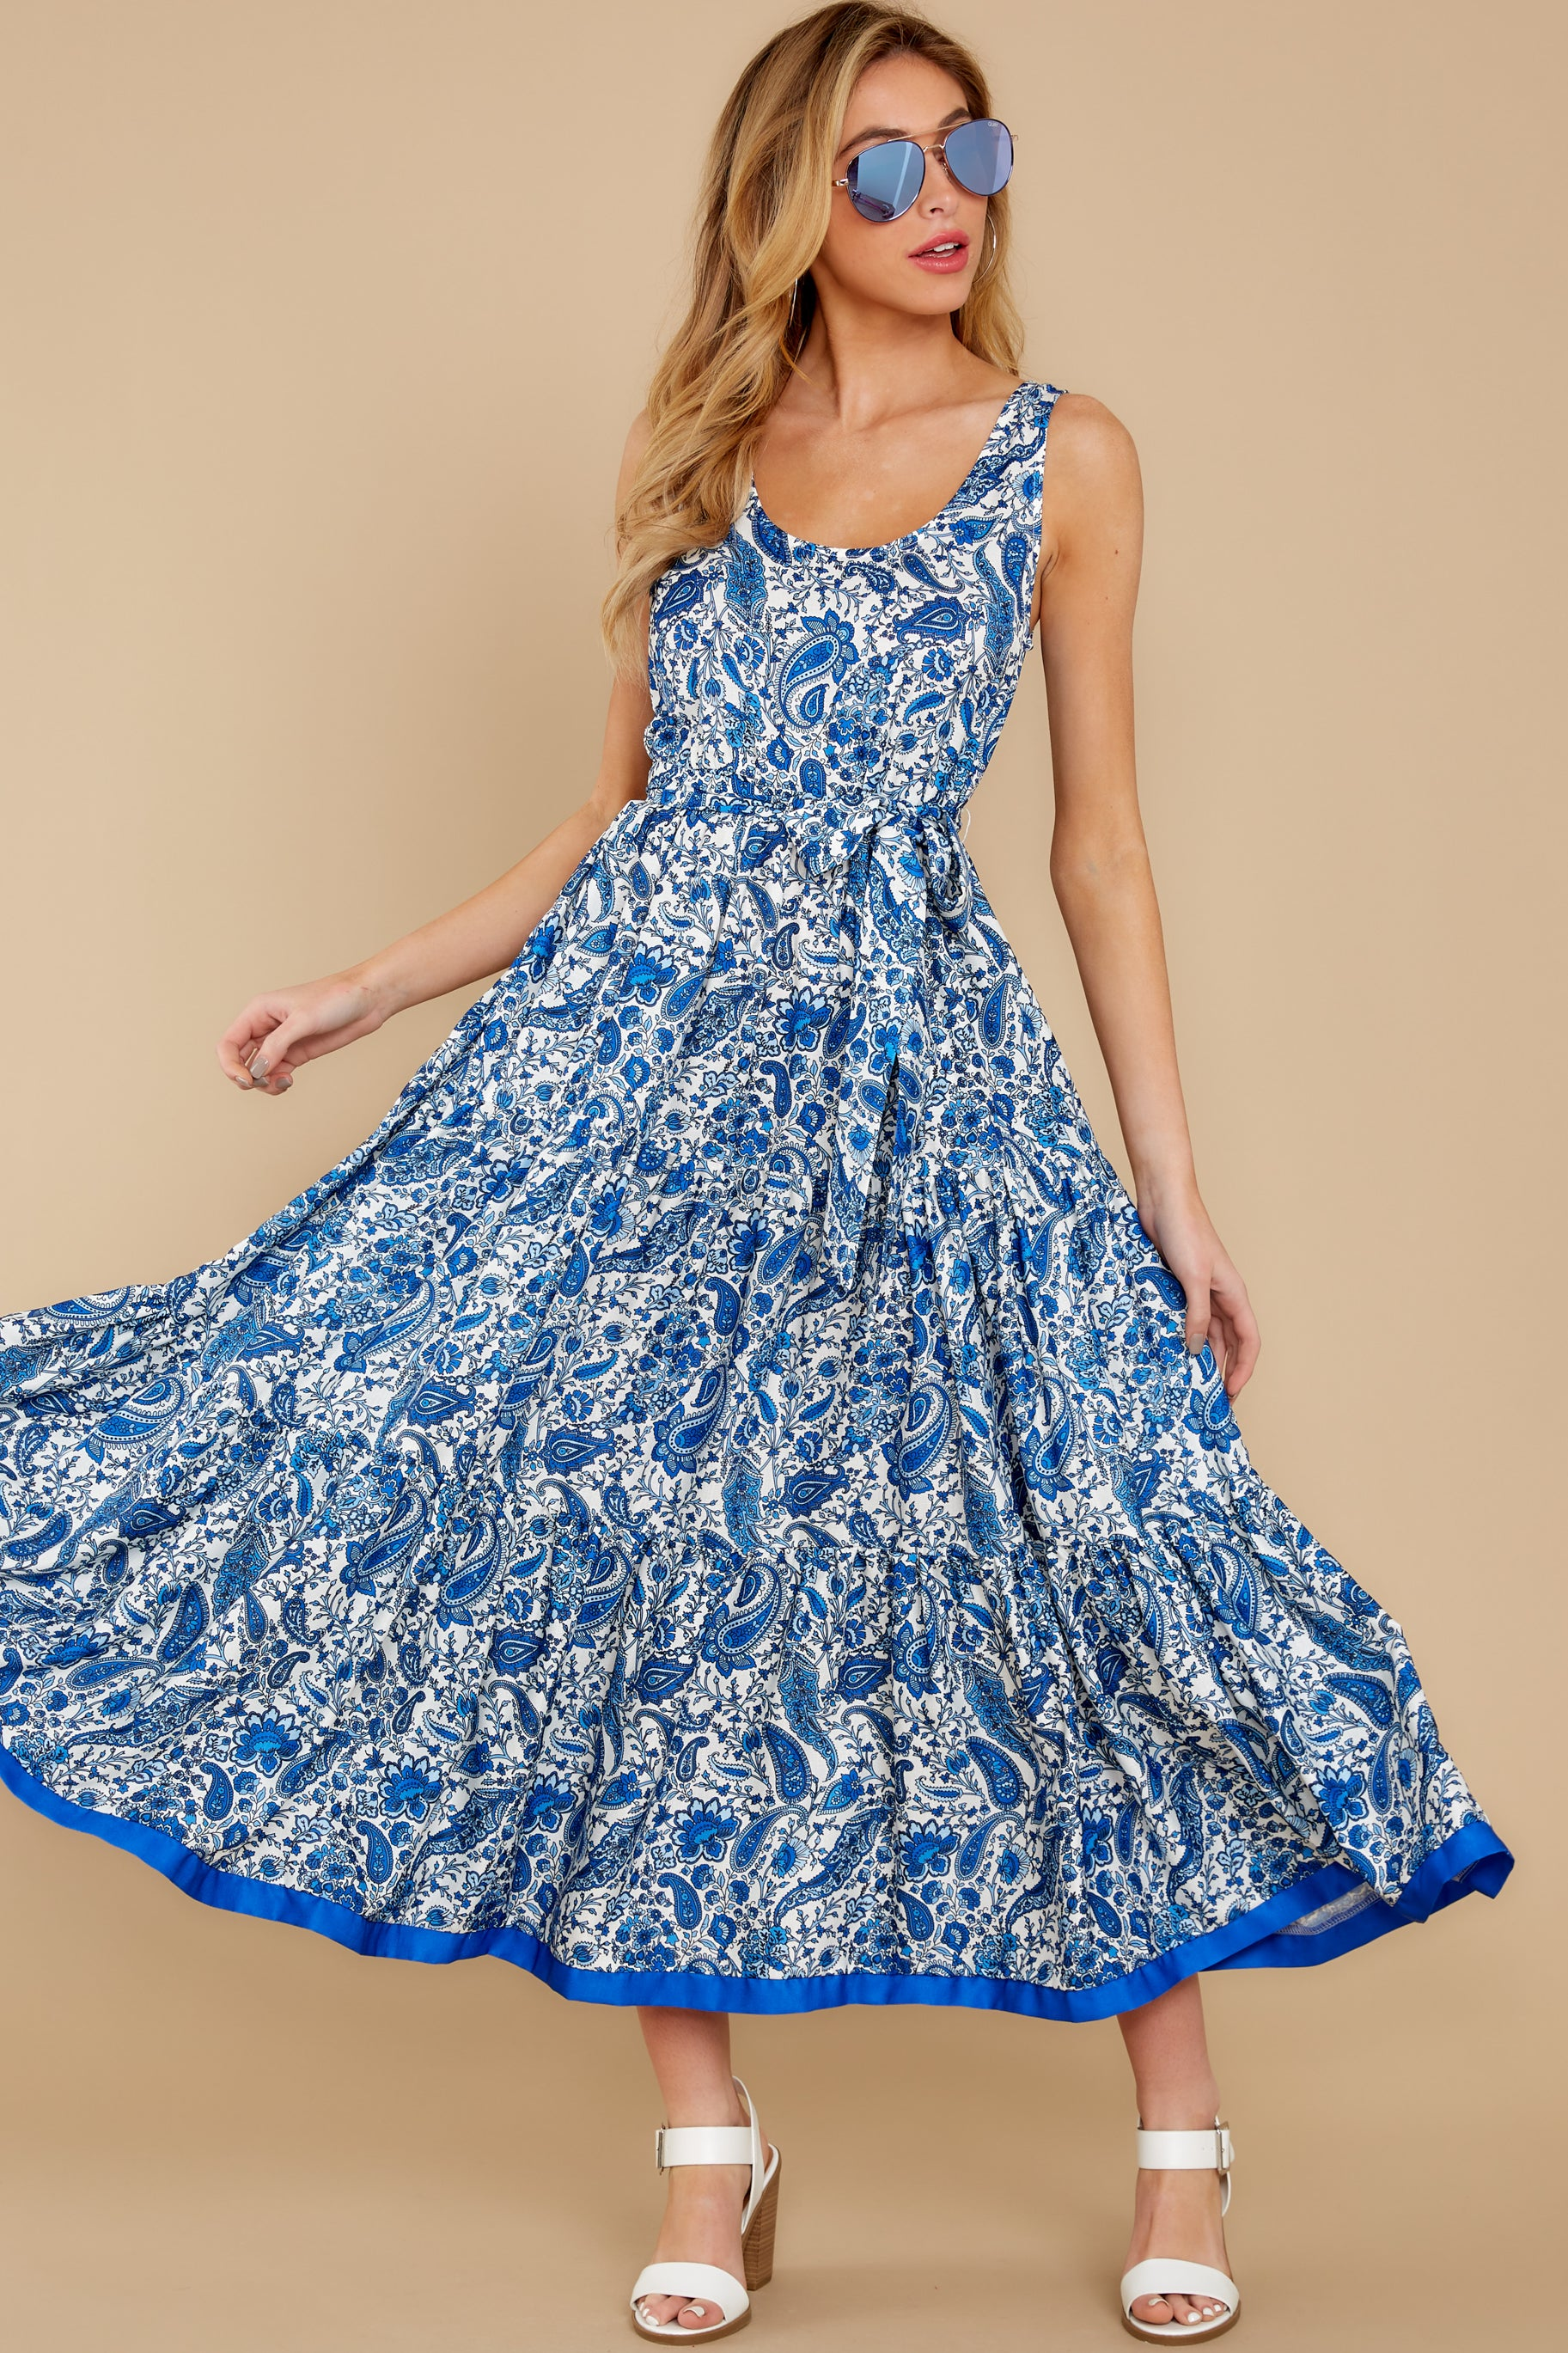 1 Noticing You Blue Multi Print Maxi Dress at reddress.com